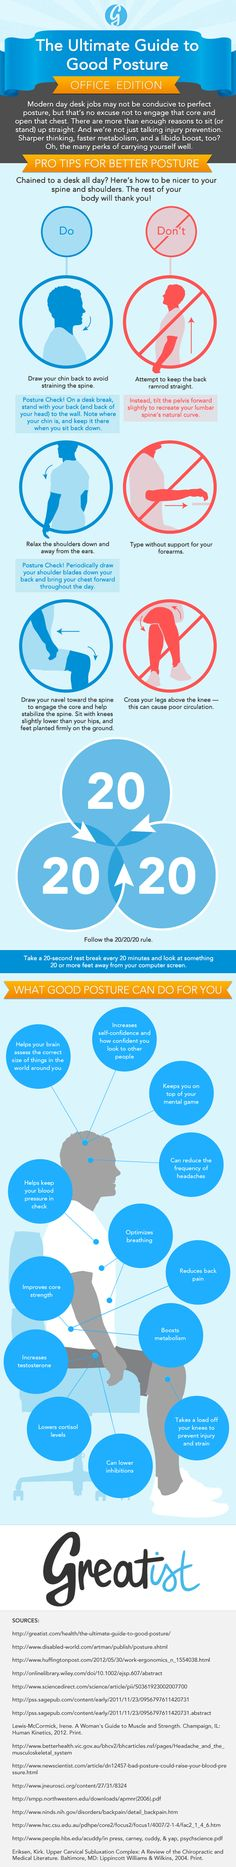 Ultimate Guide to Posture At Work. Immediately sat up a bit straighter!